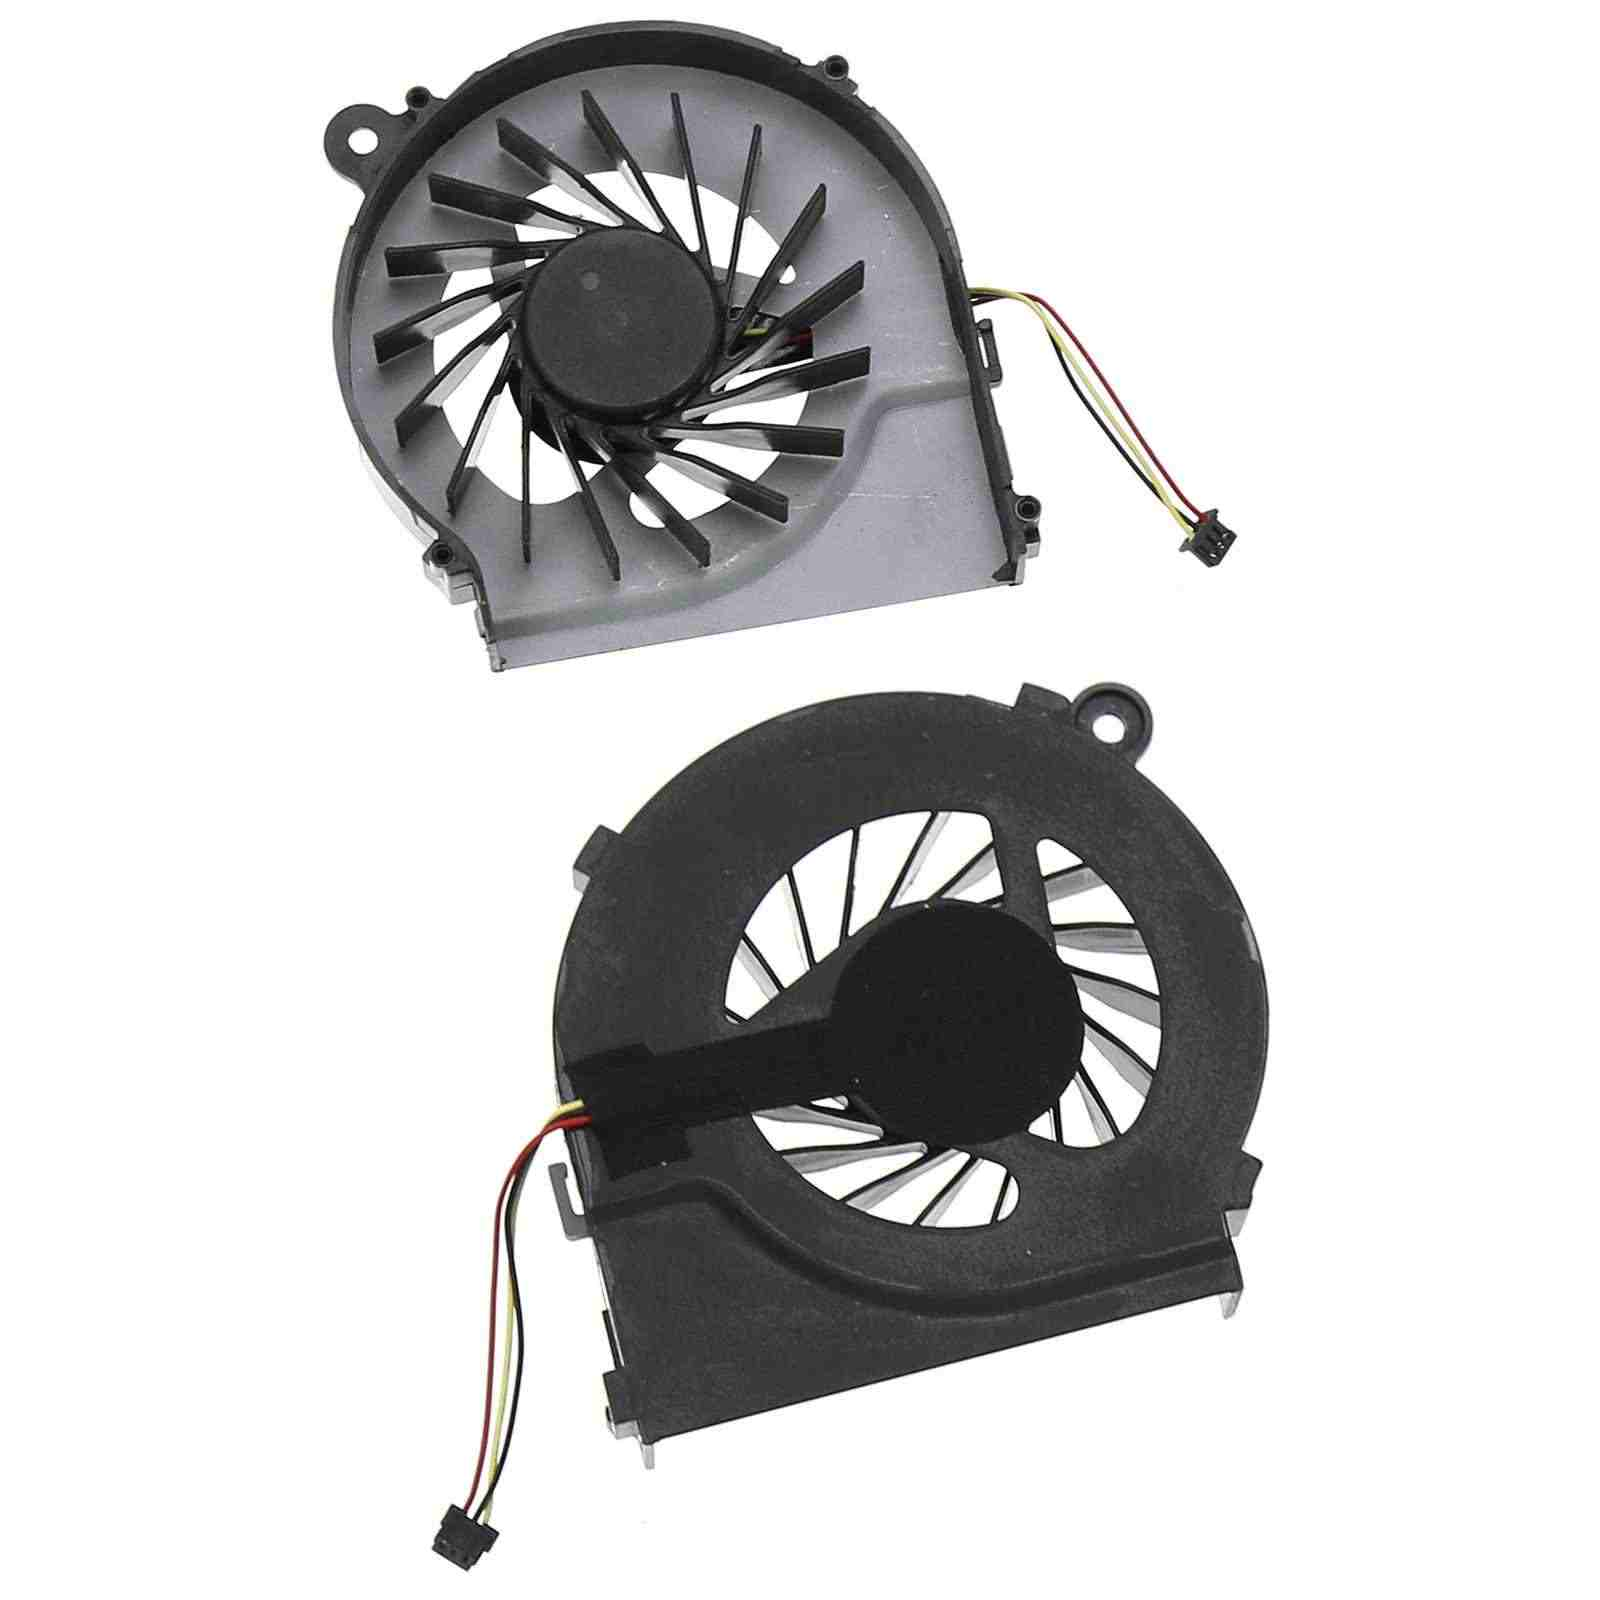 2017 laptop cpu cooler cooling fan pc cooling fan untuk g6 g7 g7-2000 g4-2000 g6-2000 g7-2240us far3300epa kipo 683193-001